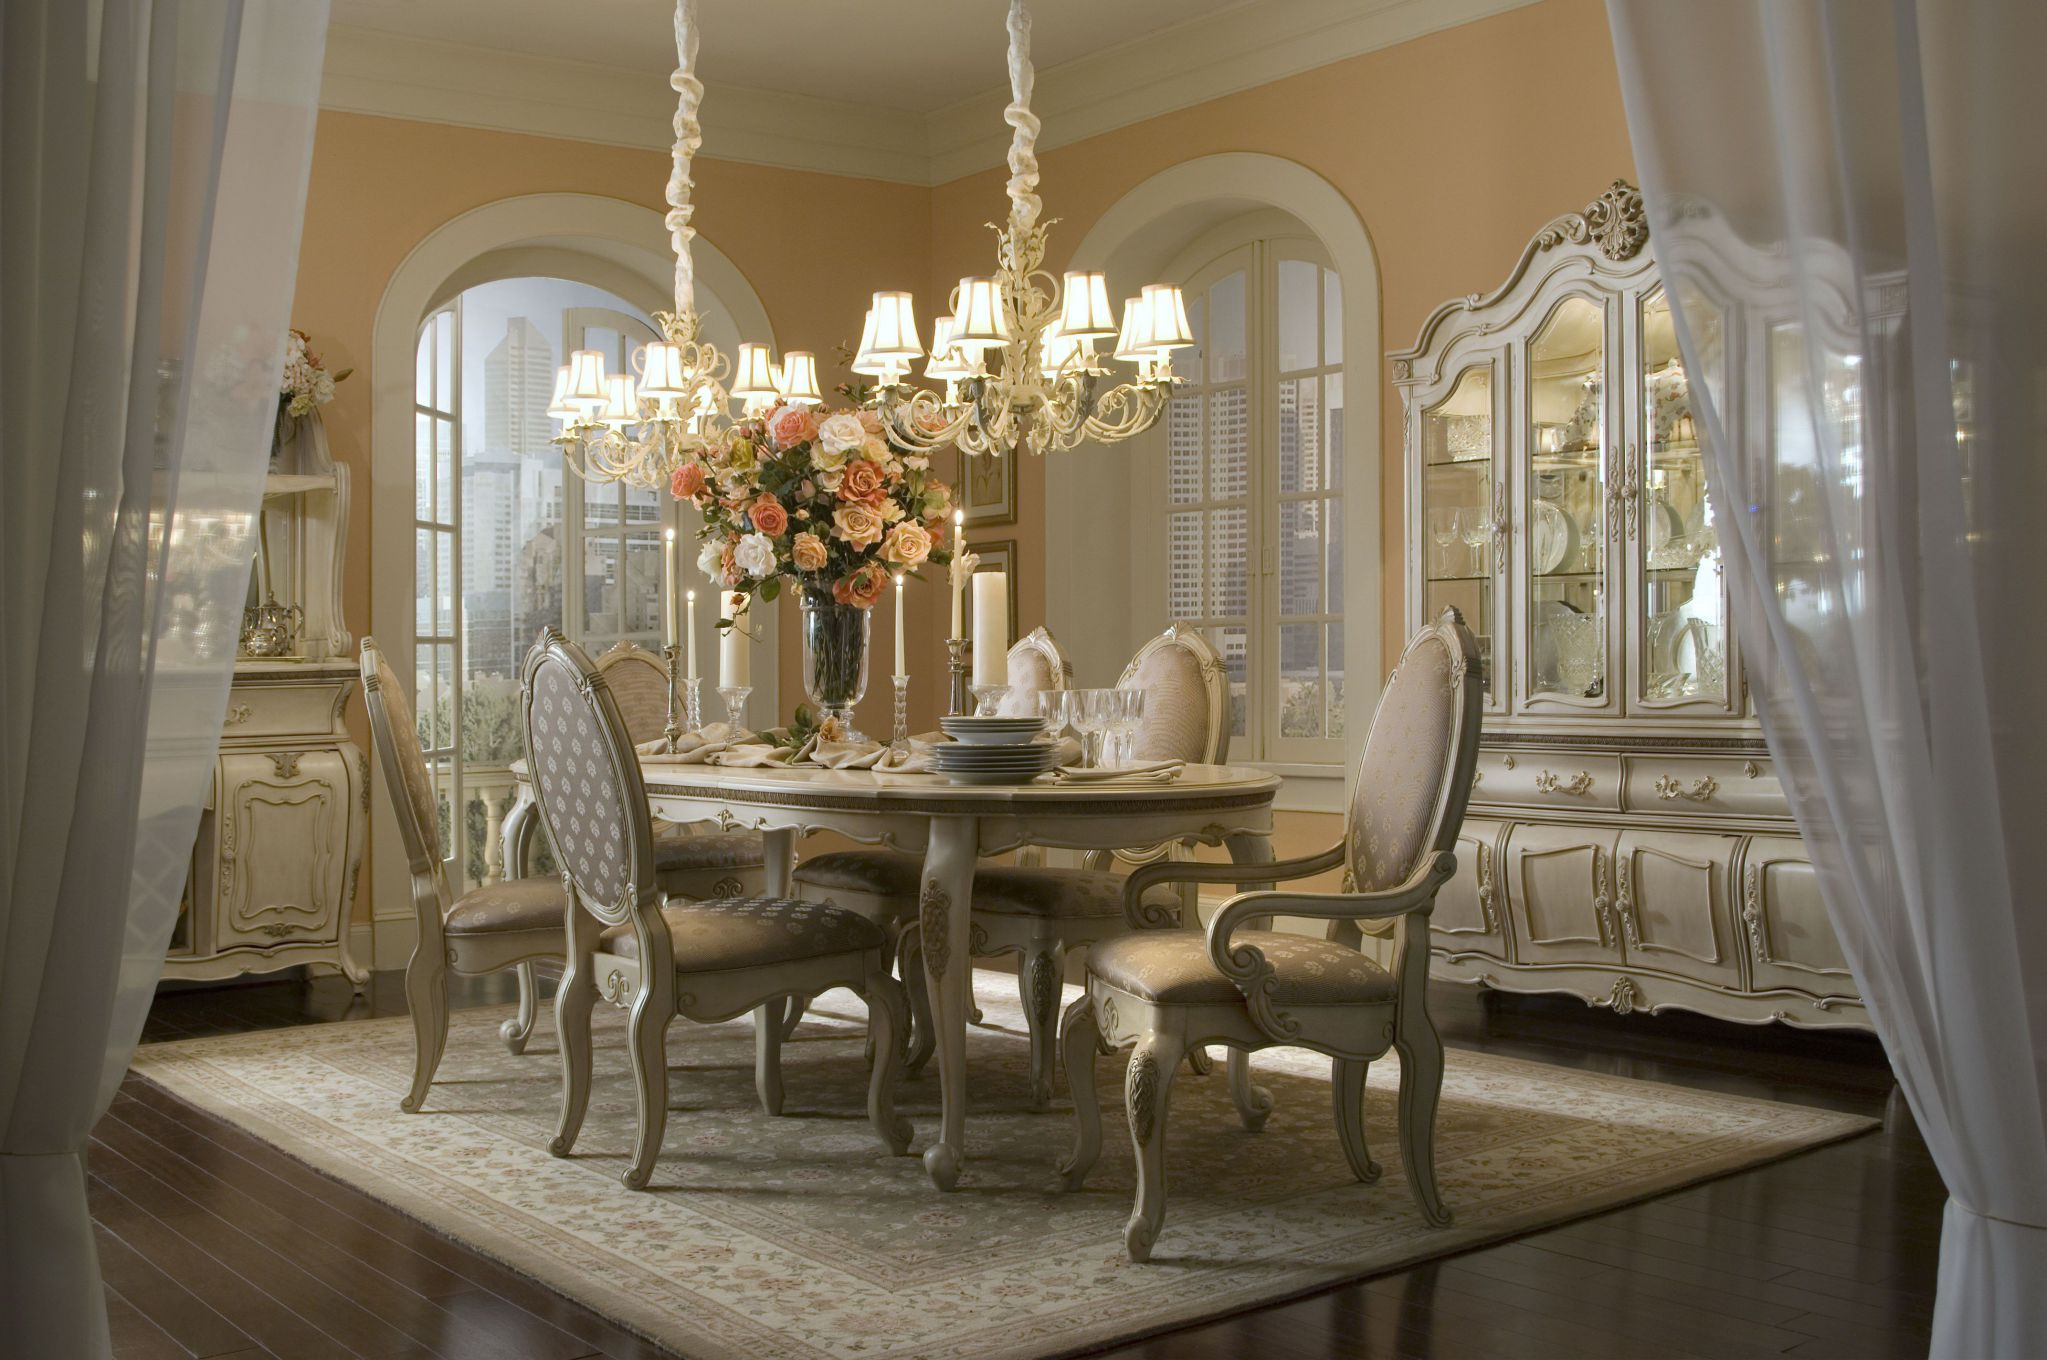 Perfect Dining Room Lighting Ideas above Marvelous Table and Chairs